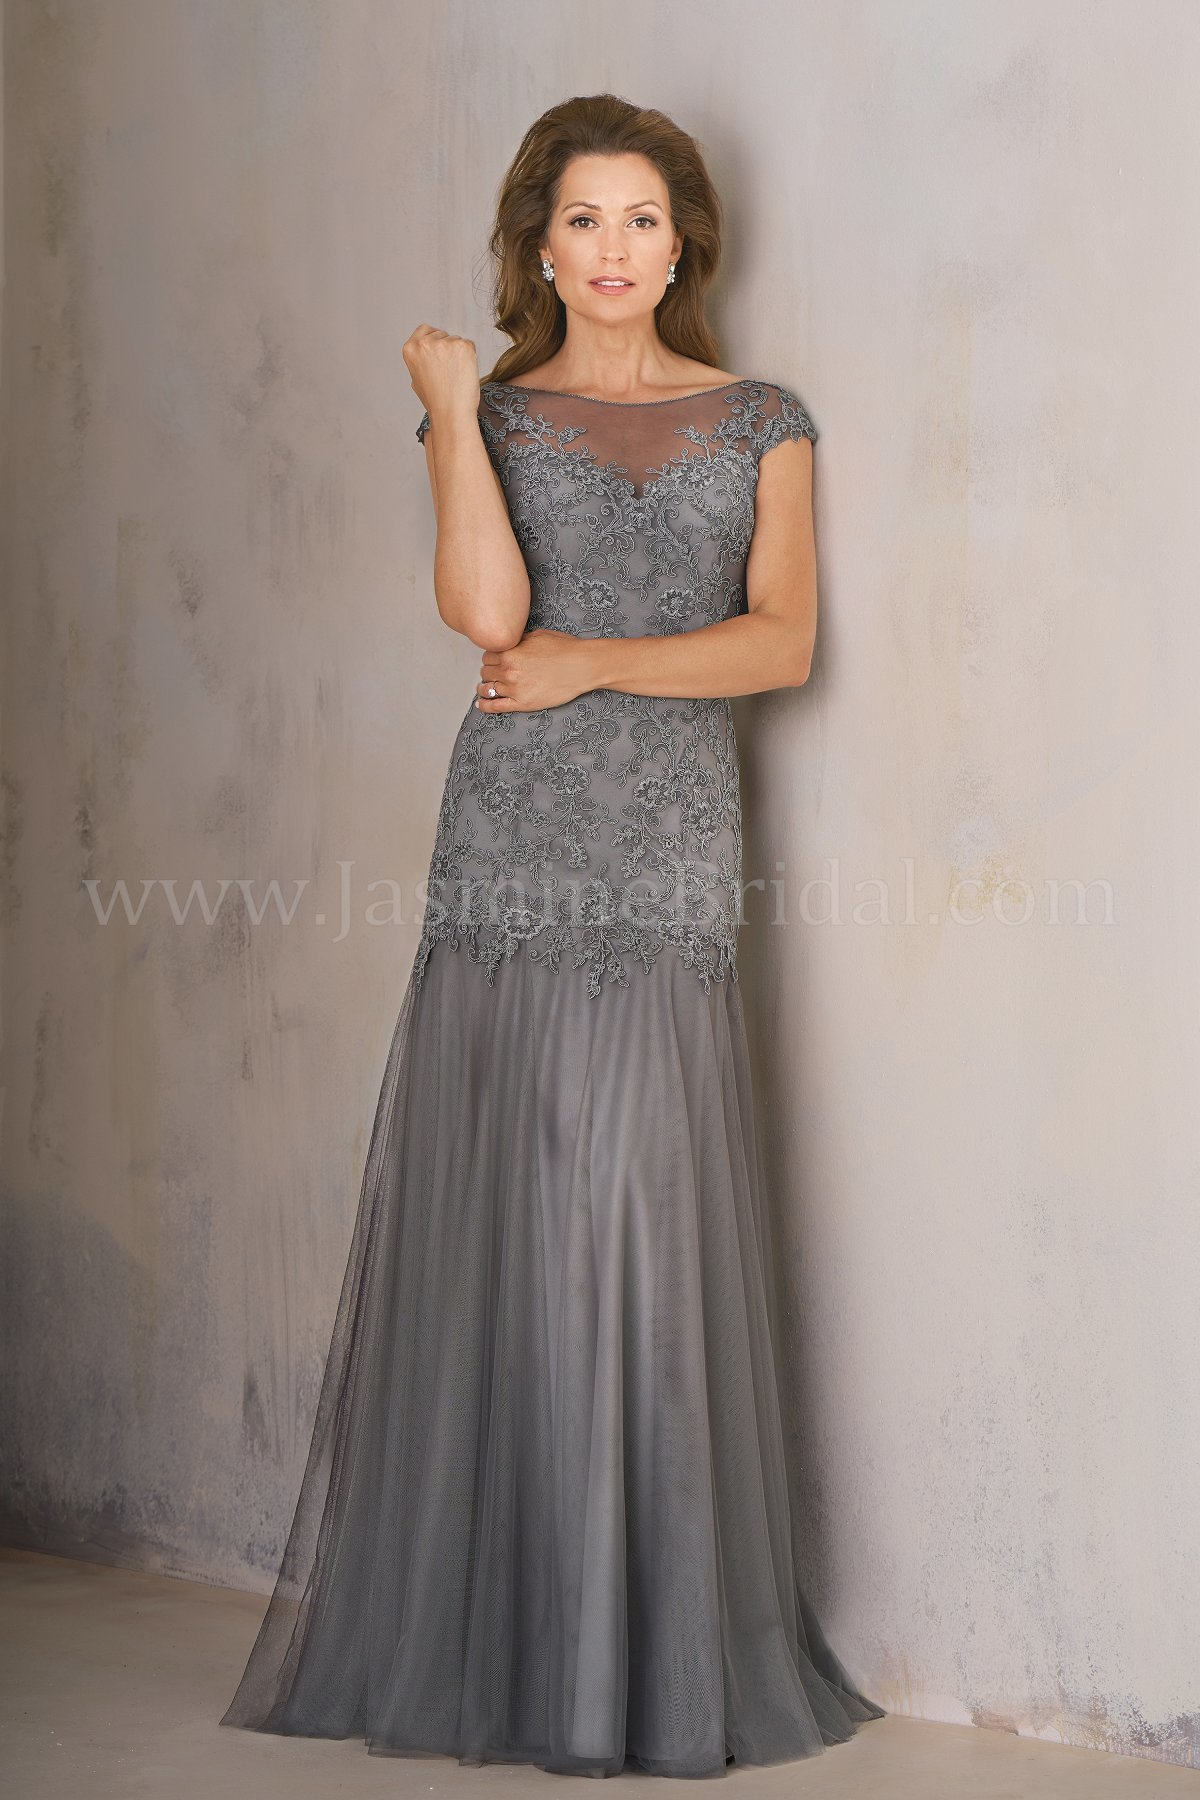 mother-of-the-bride-dresses-K208006-F